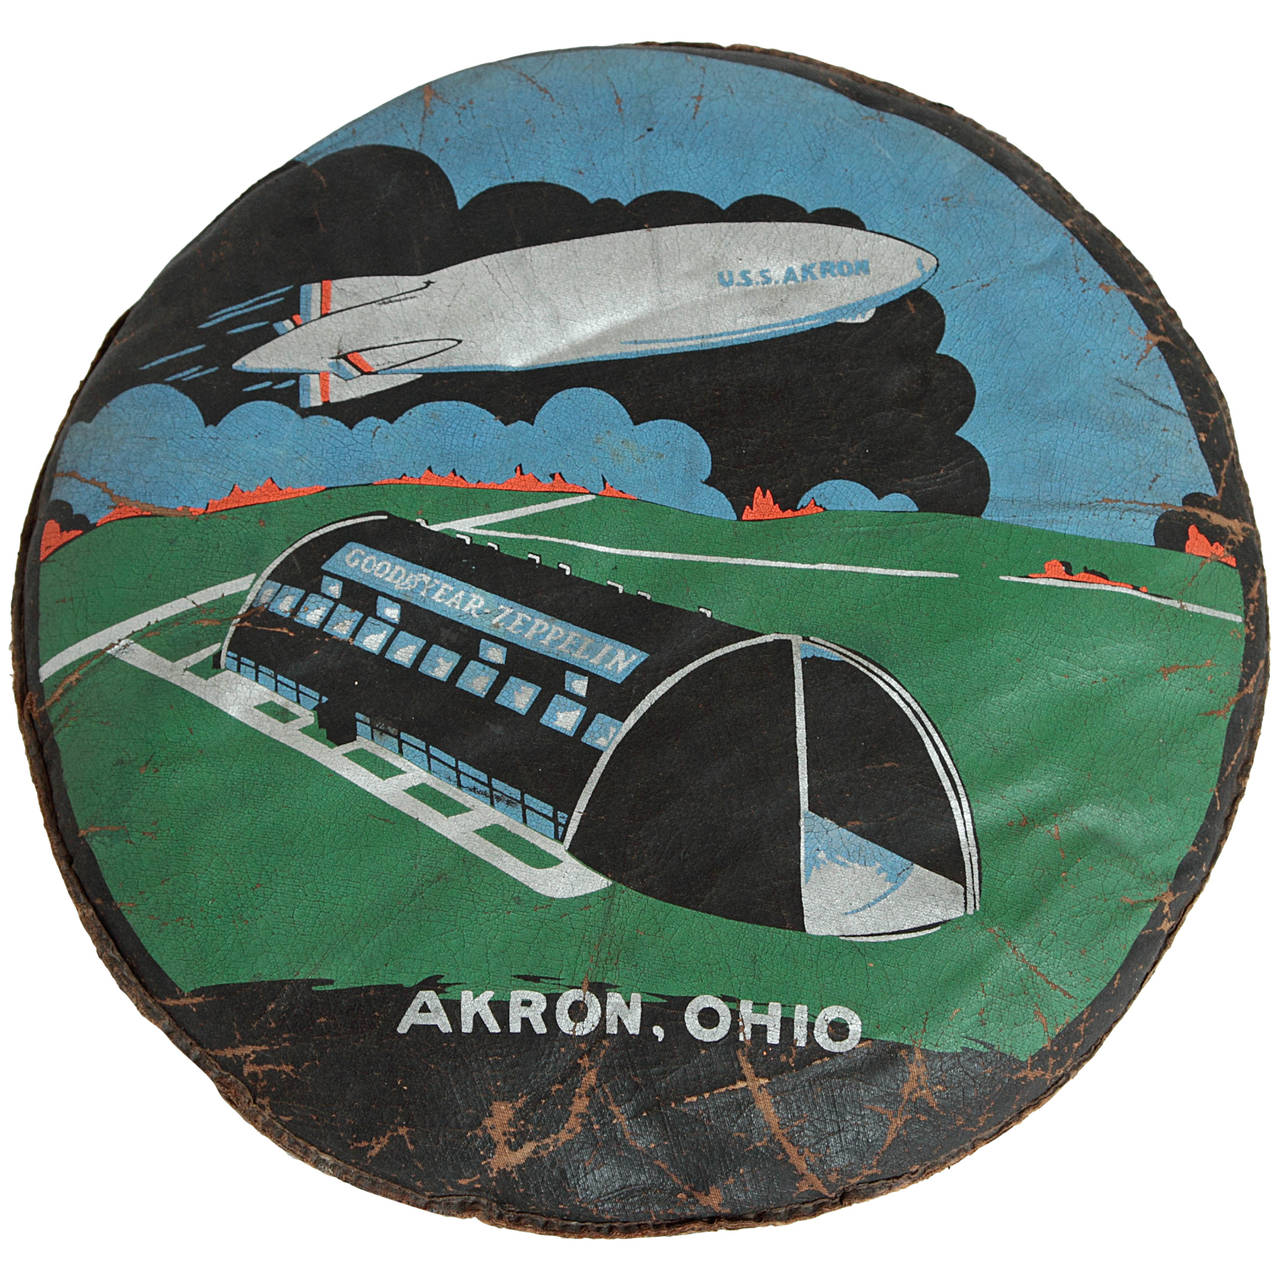 Rare U.S.S. Akron Goodyear Zeppelin Cushion in Art Deco Style For Sale